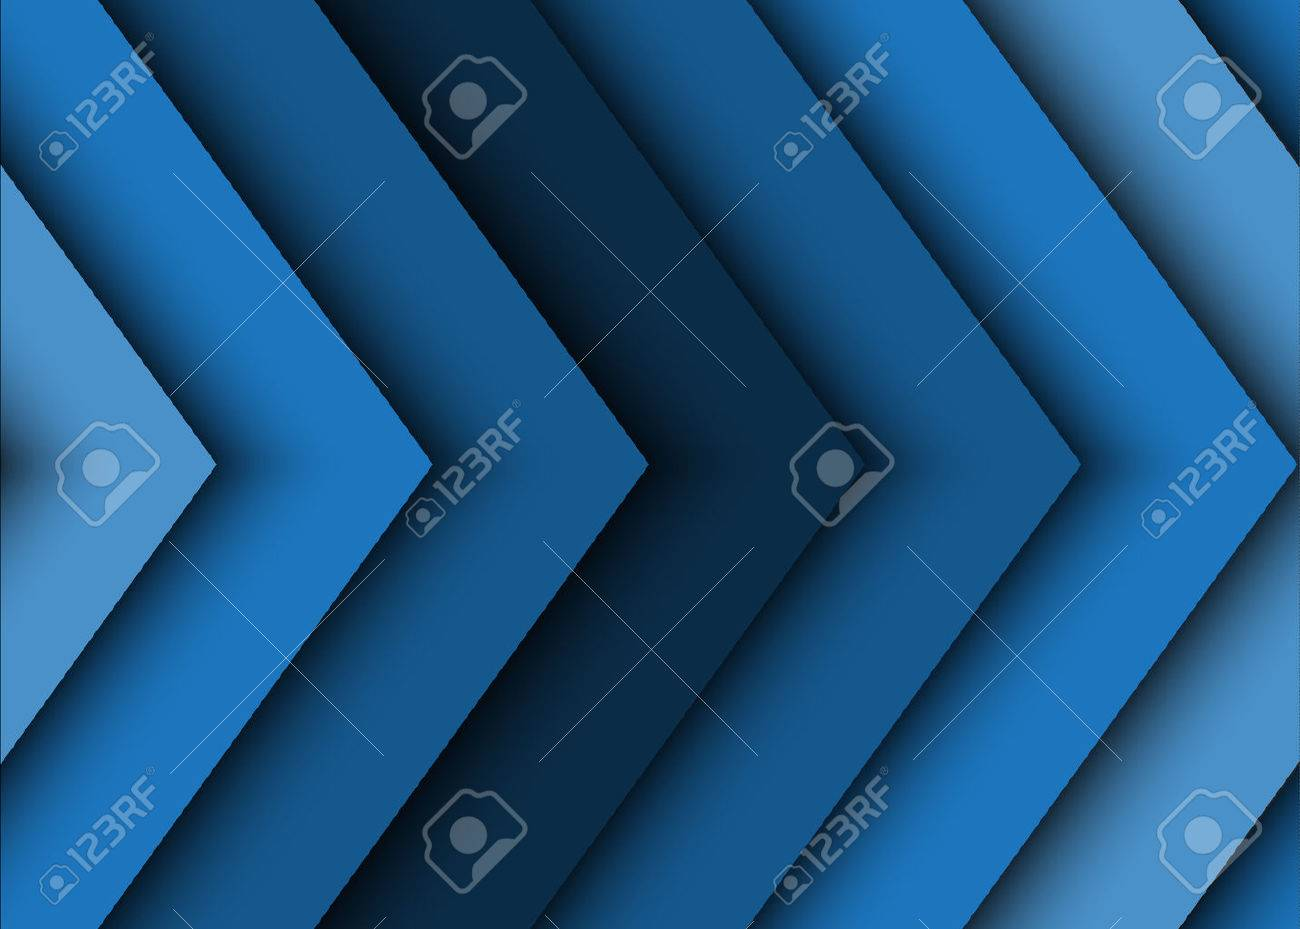 Blue abstract background of arrows - 56411743